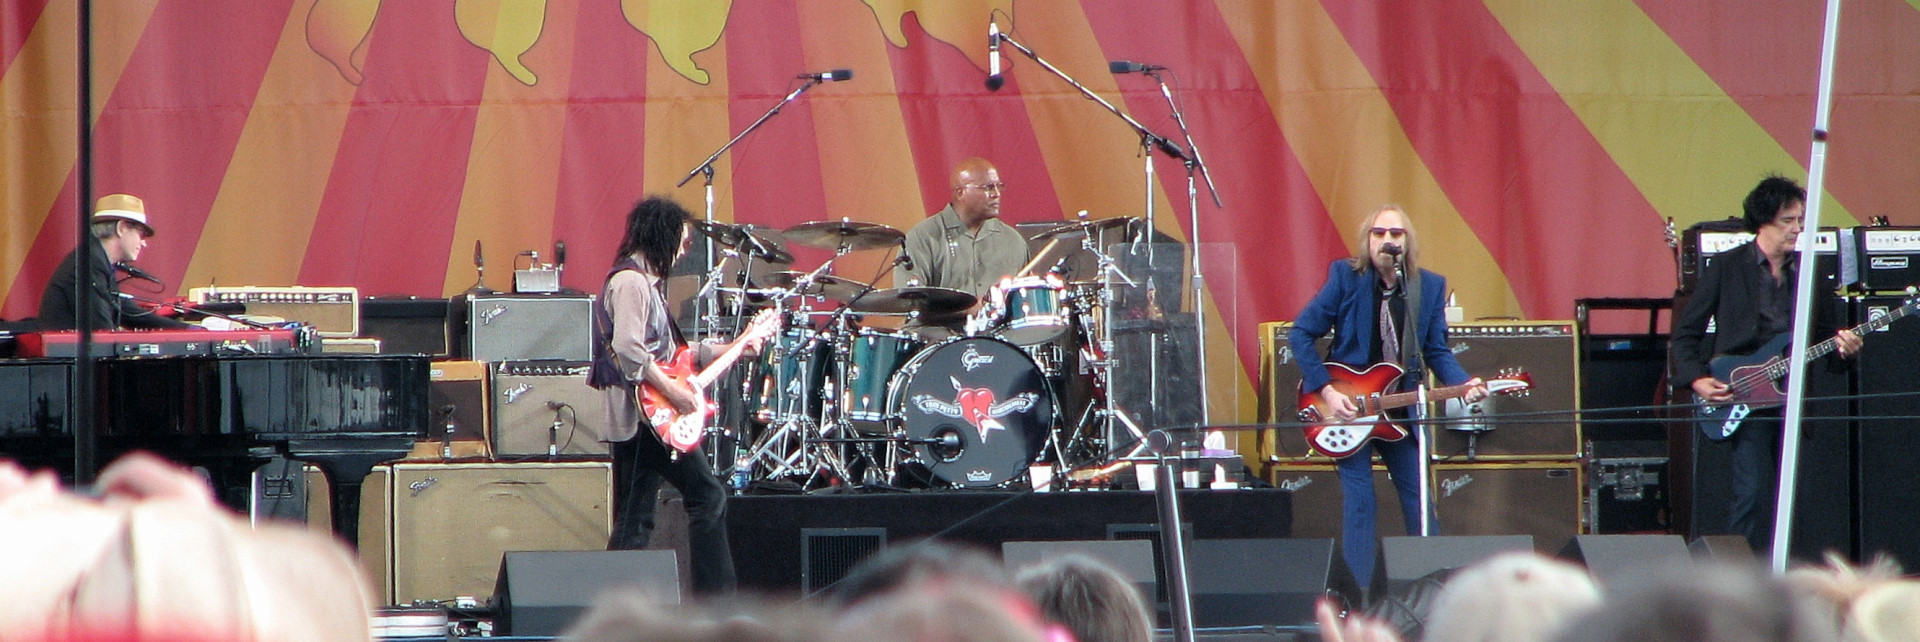 Scott Thurston, Mike Campbell, Steve Ferrone, Tom Petty, and Ron Blair